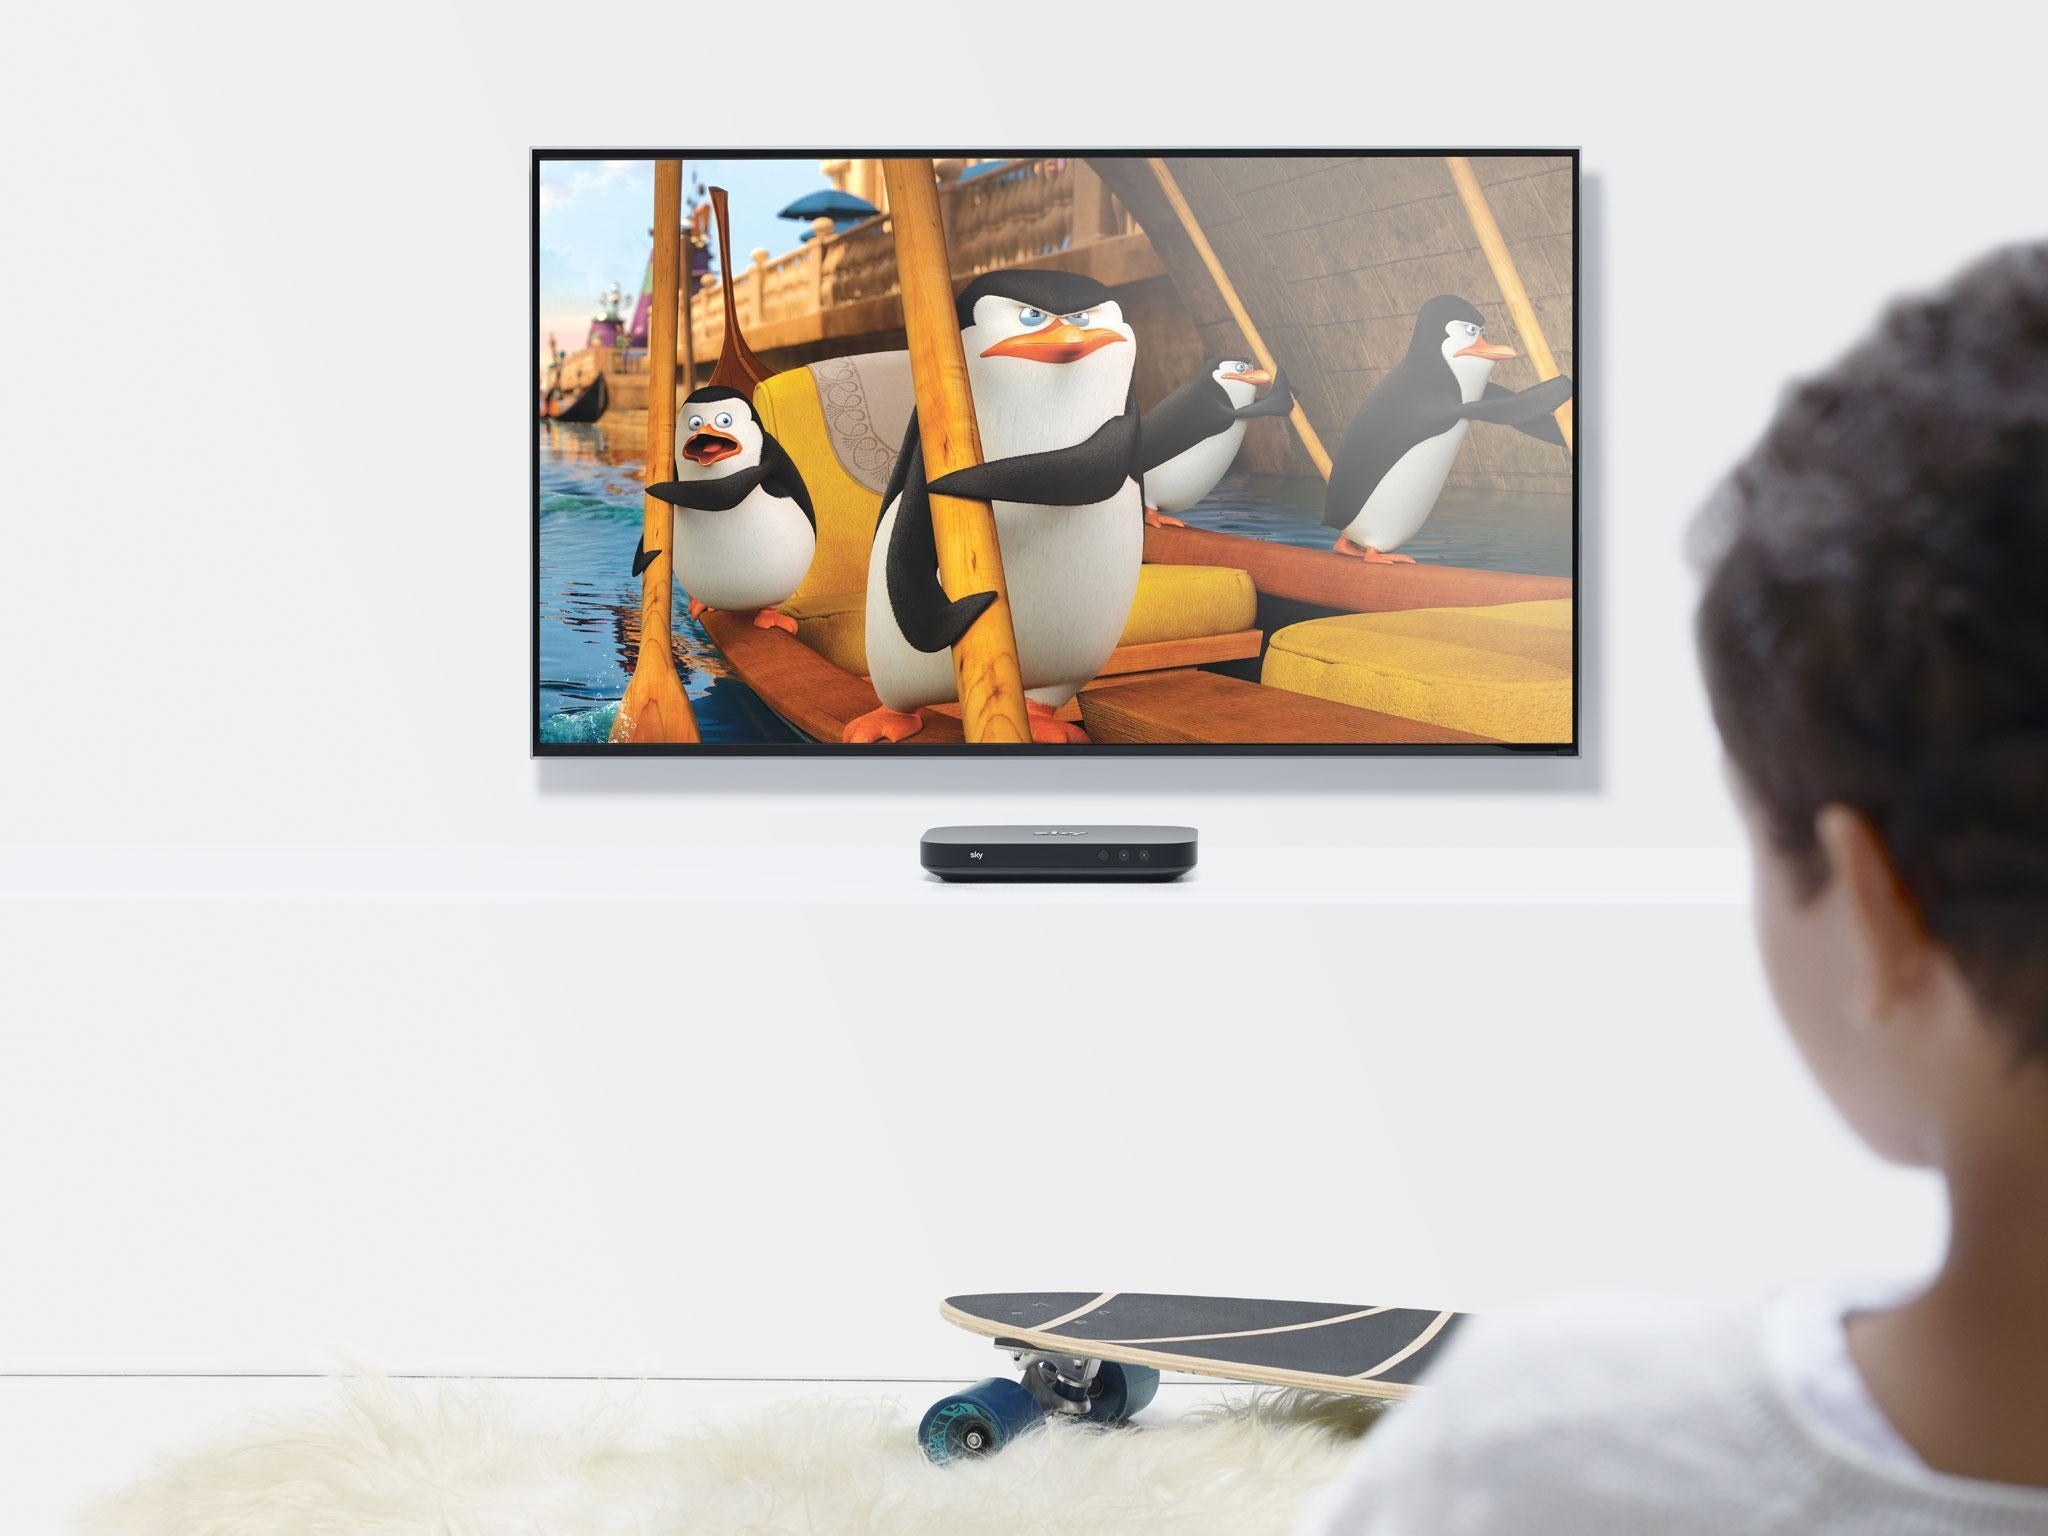 8 Best Tv Streaming Boxes The Independent To Cable Line Ready Tvs Or Through An Adapter Box Set Top